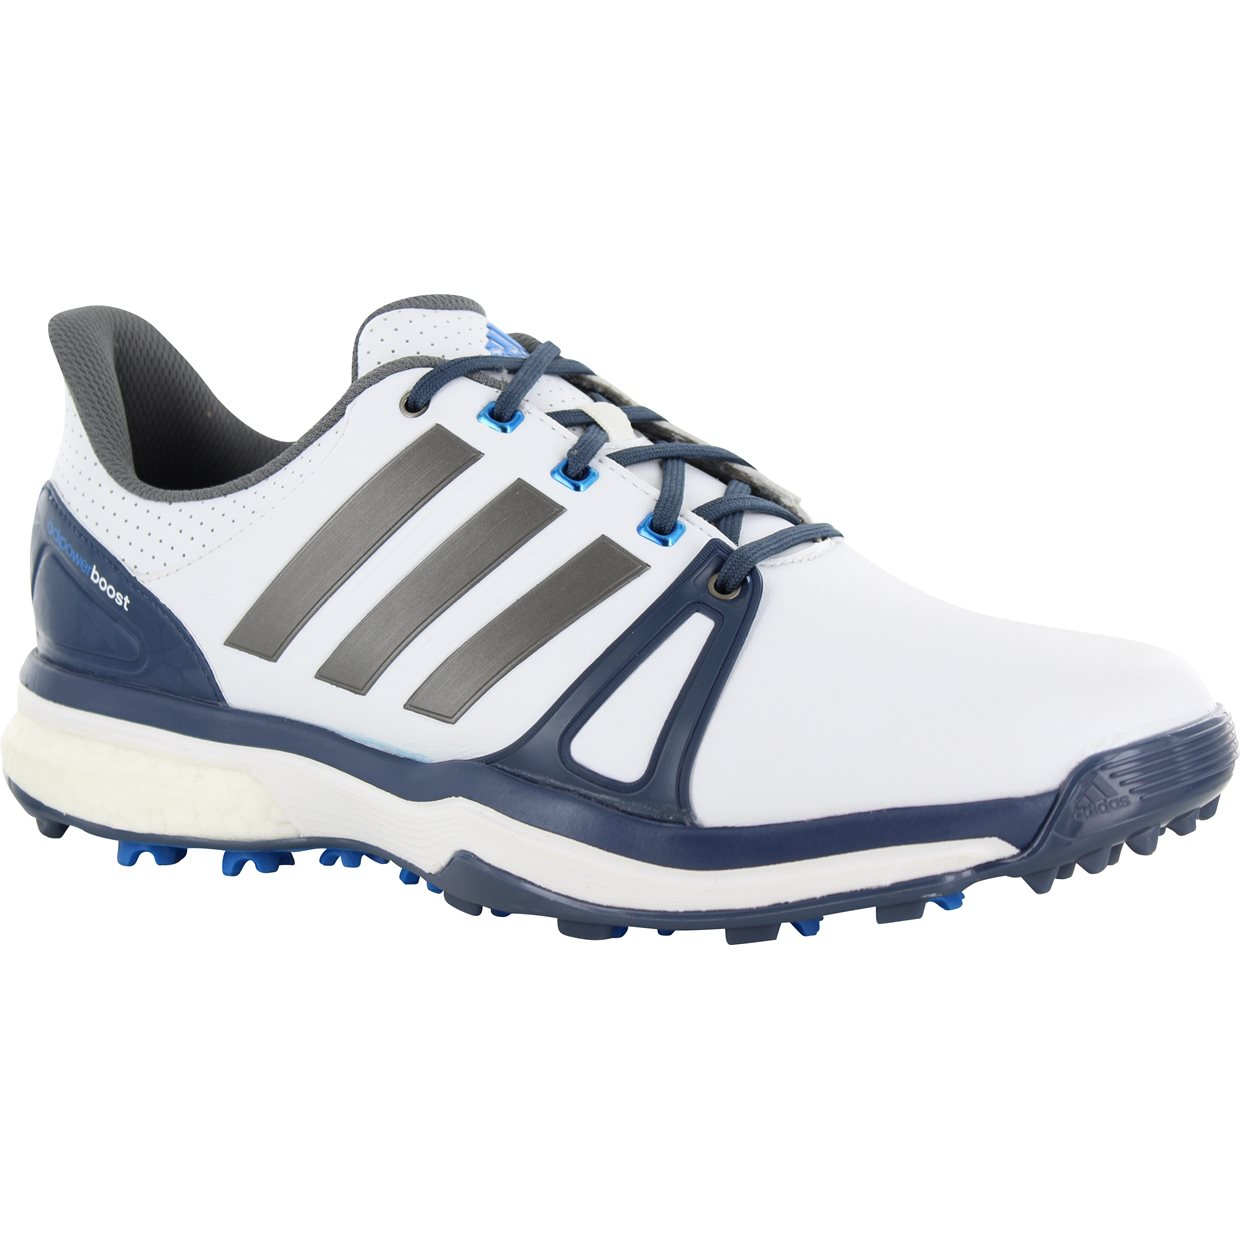 mens golf shoes adidas